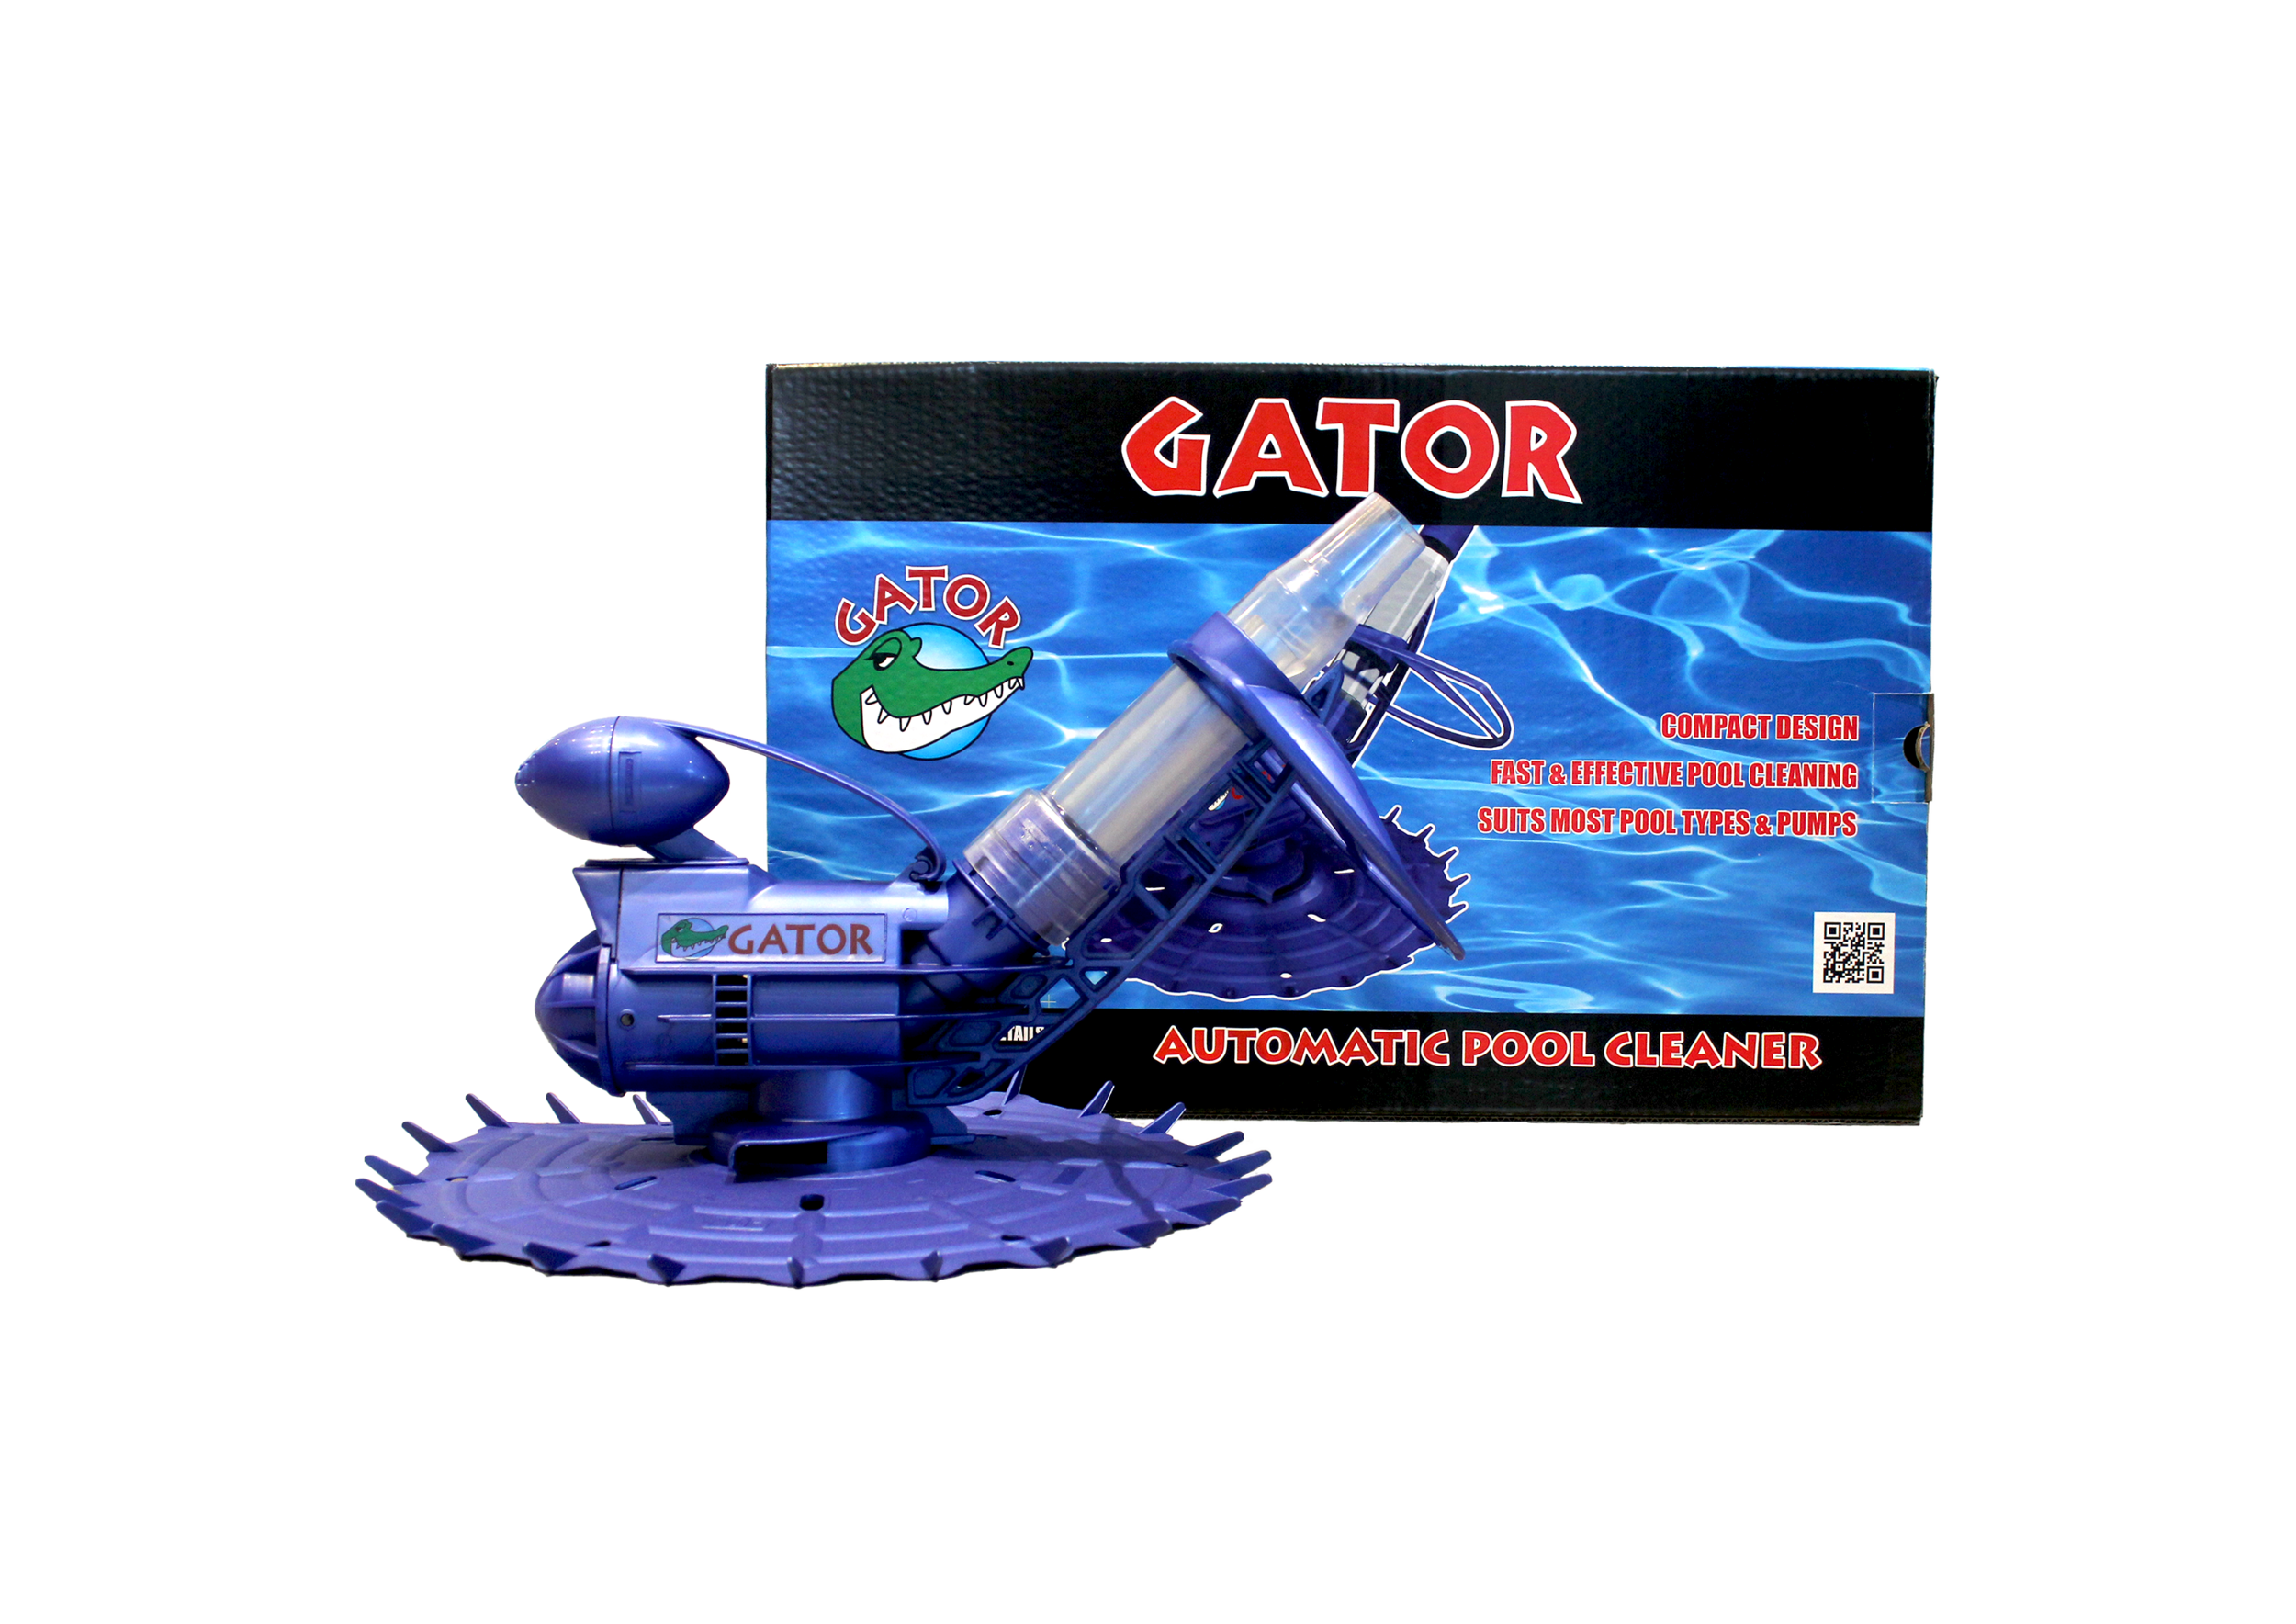 gator + pool cleaner.png